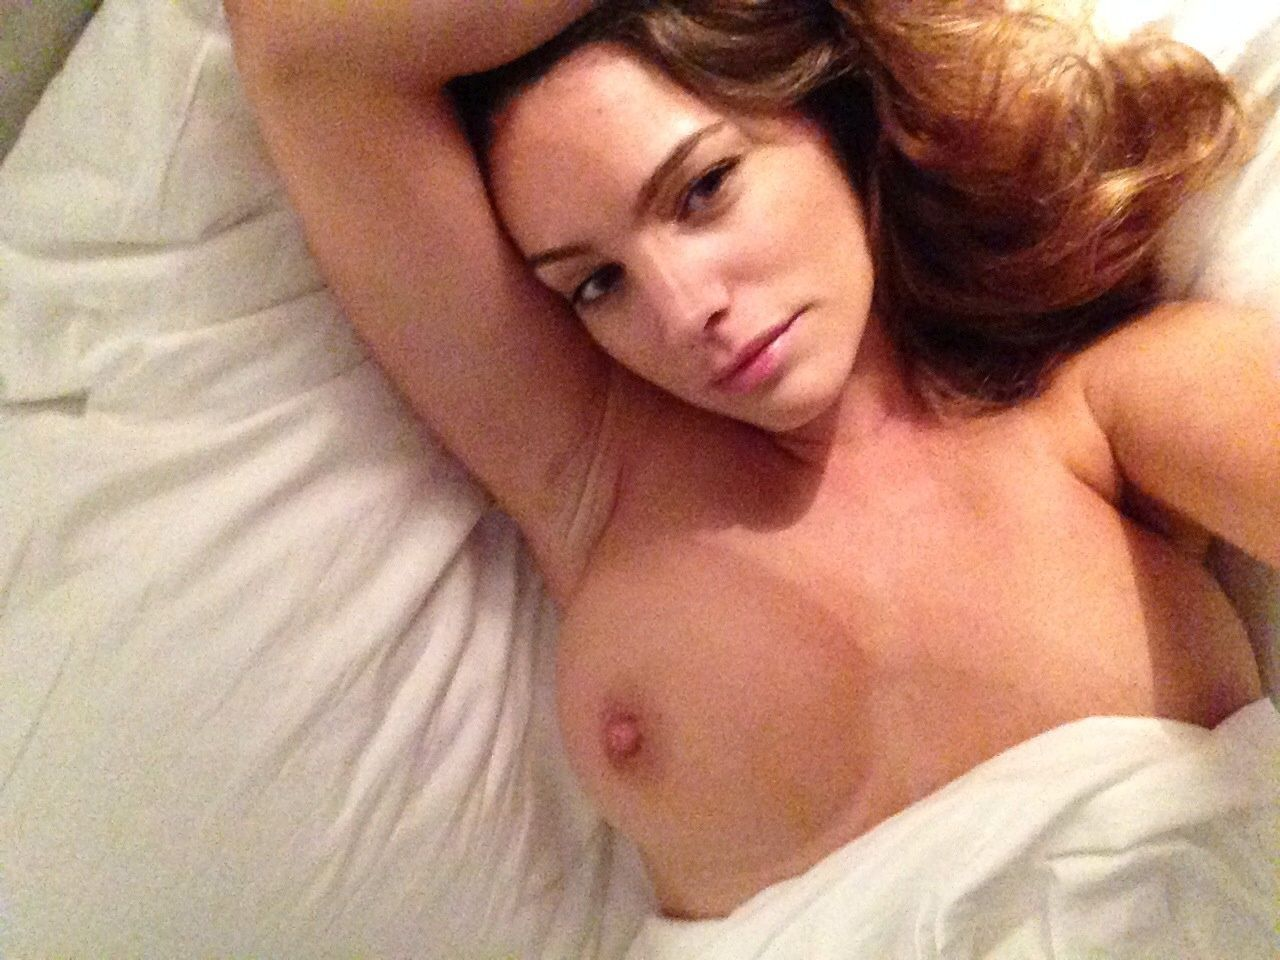 nude-pics-of-kelly-brook-big-sexy-white-women